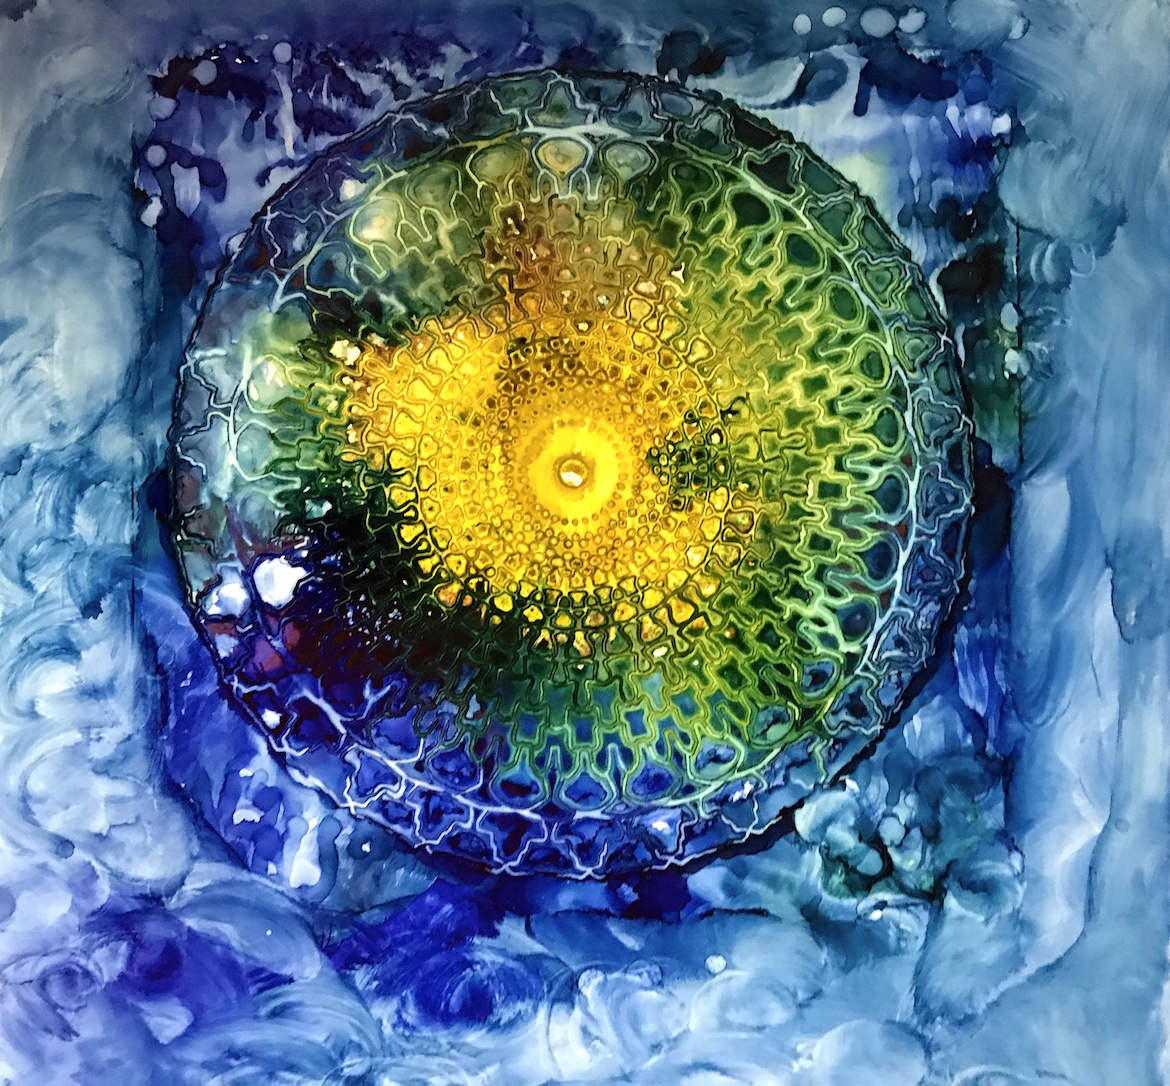 Kate Palmo: Blue Mandala